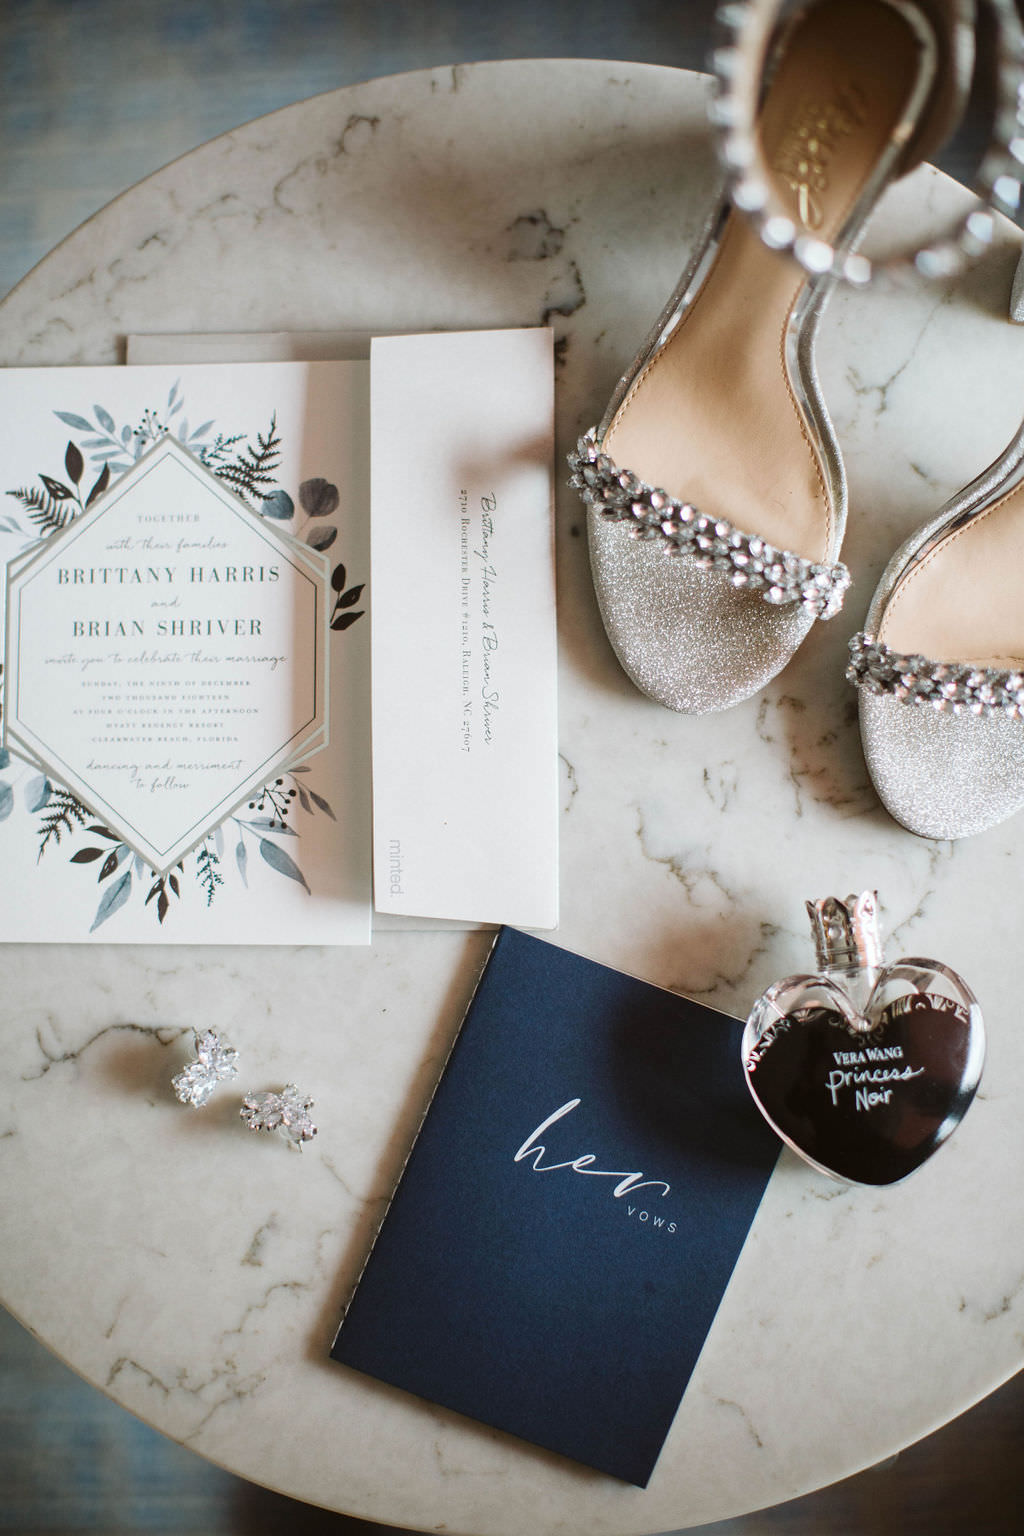 Bride Wedding Accessories, Navy Blue Vows Book, Peep Toe Silver and Rhinestone Strappy Wedding Heel Shoes, Boho Inspired Wedding Invitation, Wedding Jewelry and Perfume